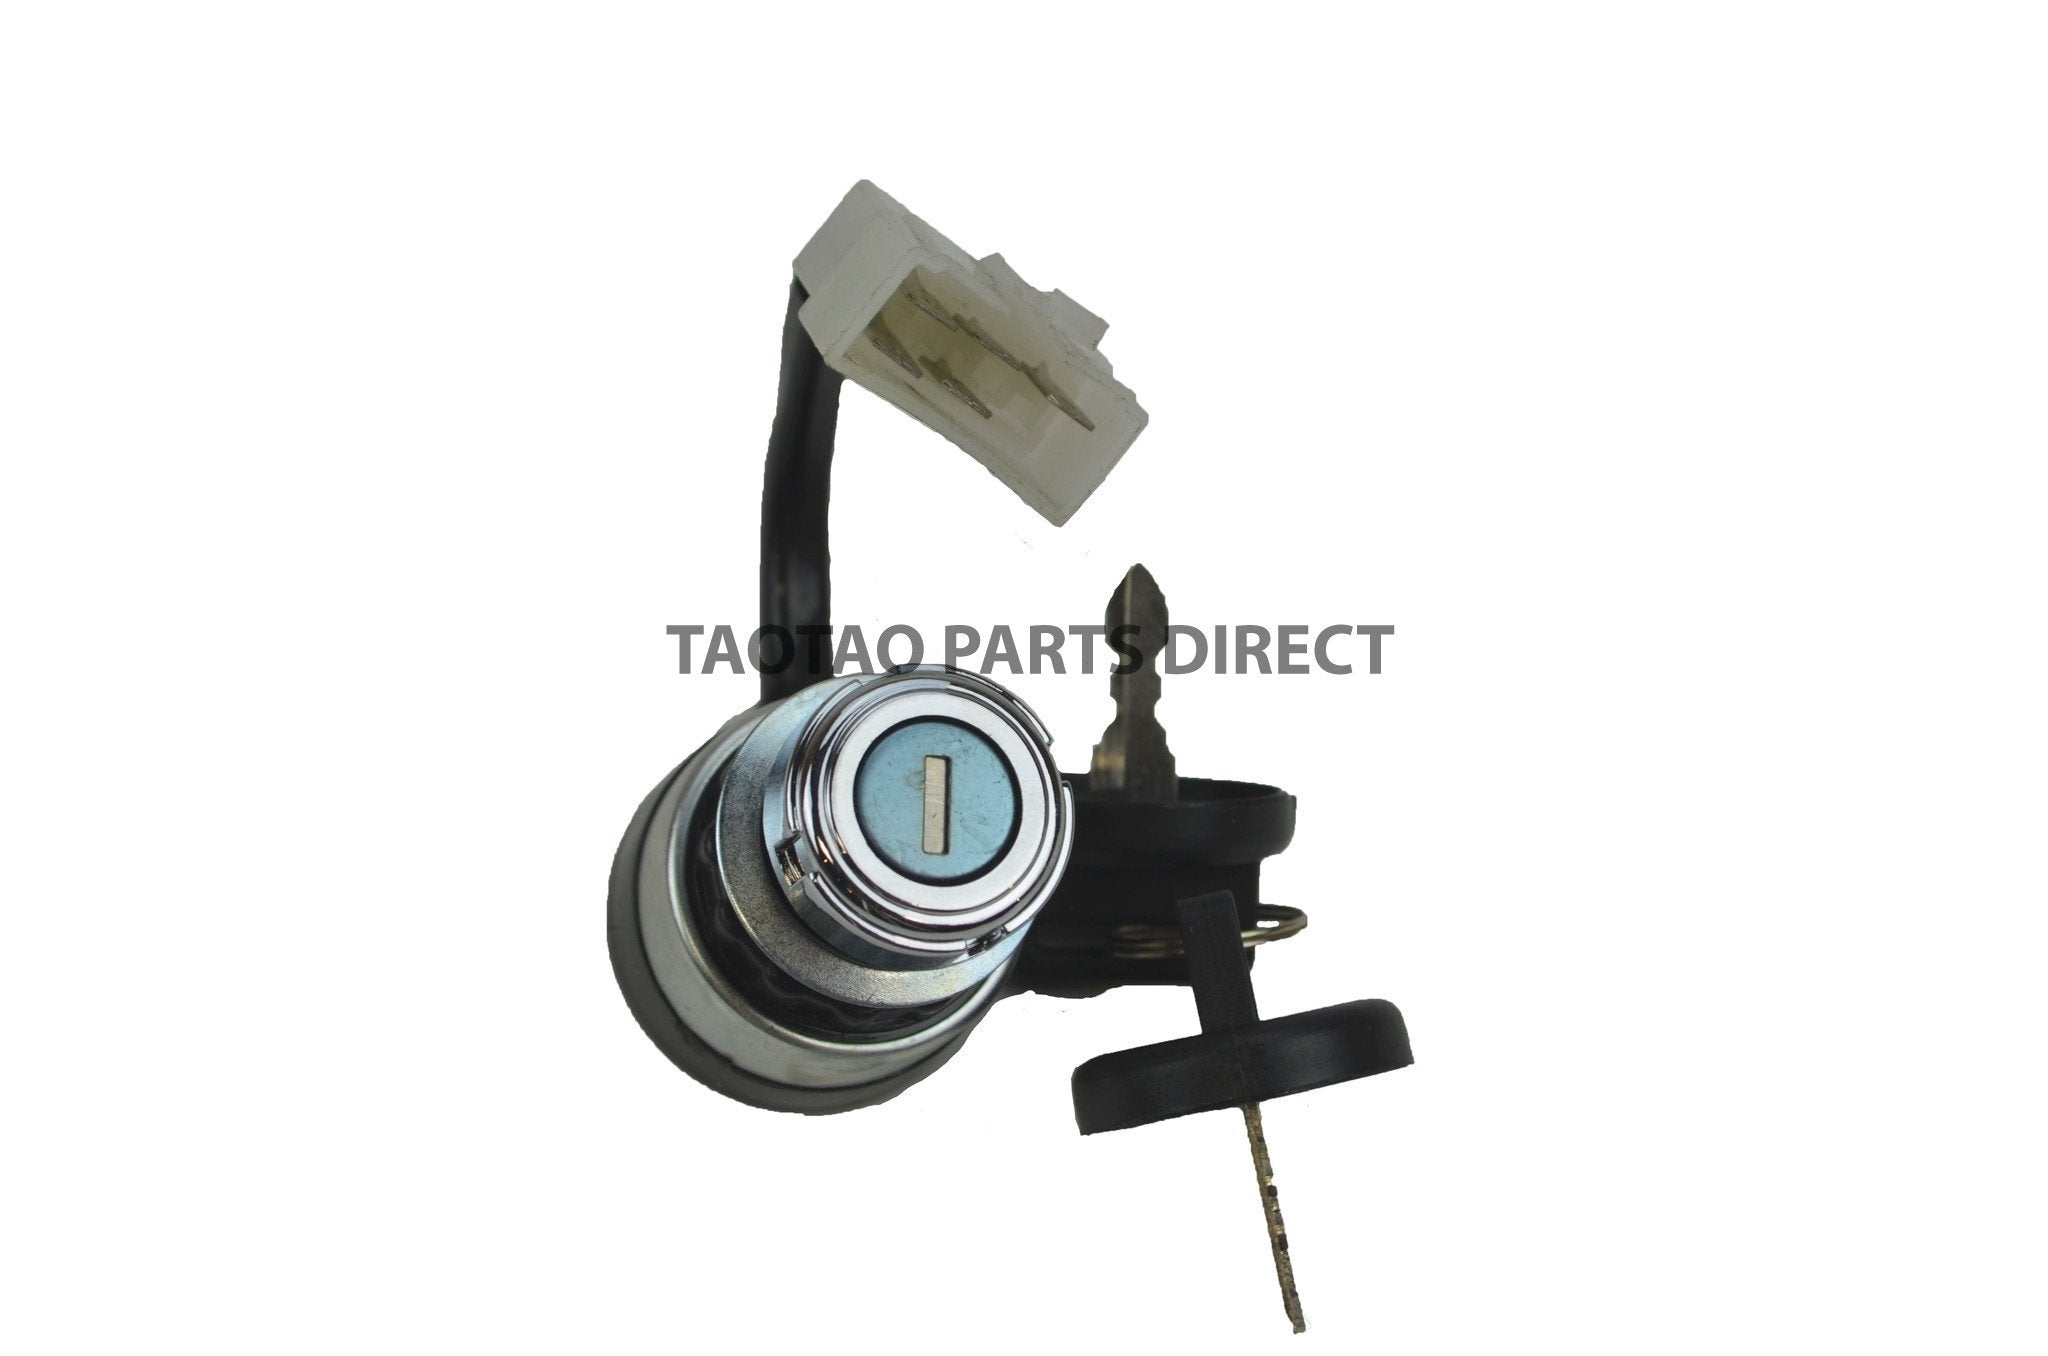 Go Kart Key Ignition - TaoTaoPartsDirect.com